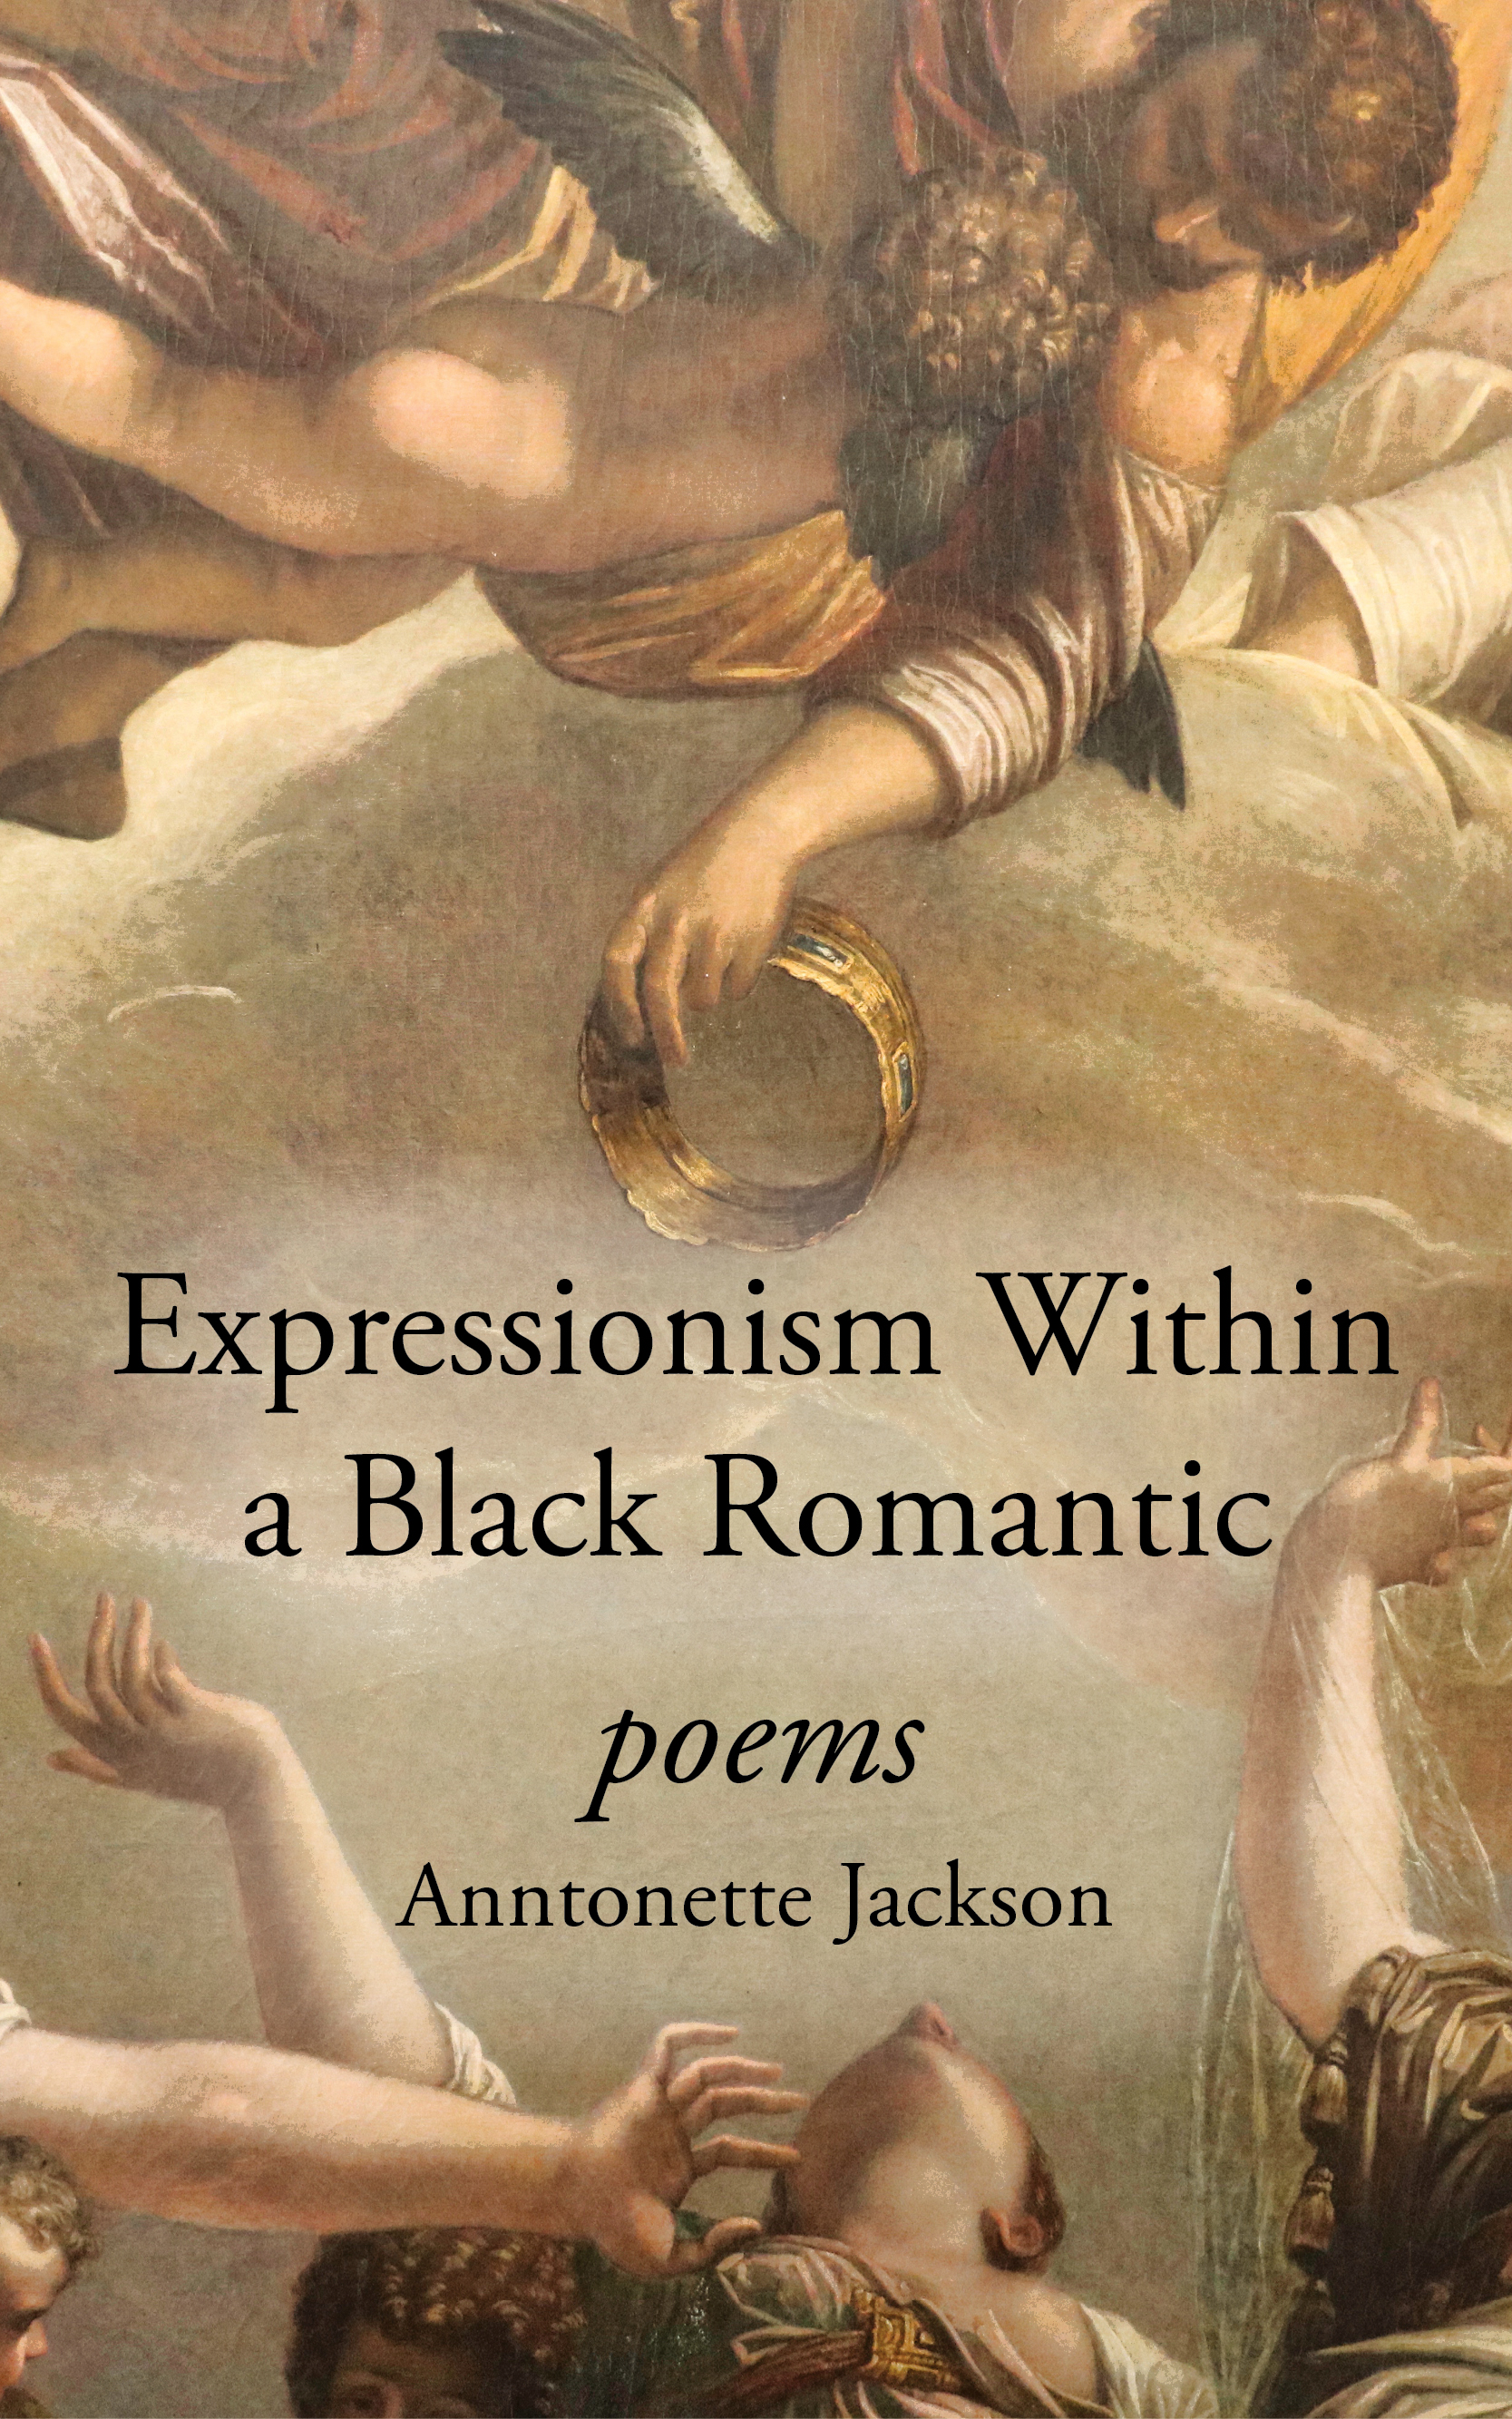 Expressions Within a Black Romantic by Anntonette Jackson